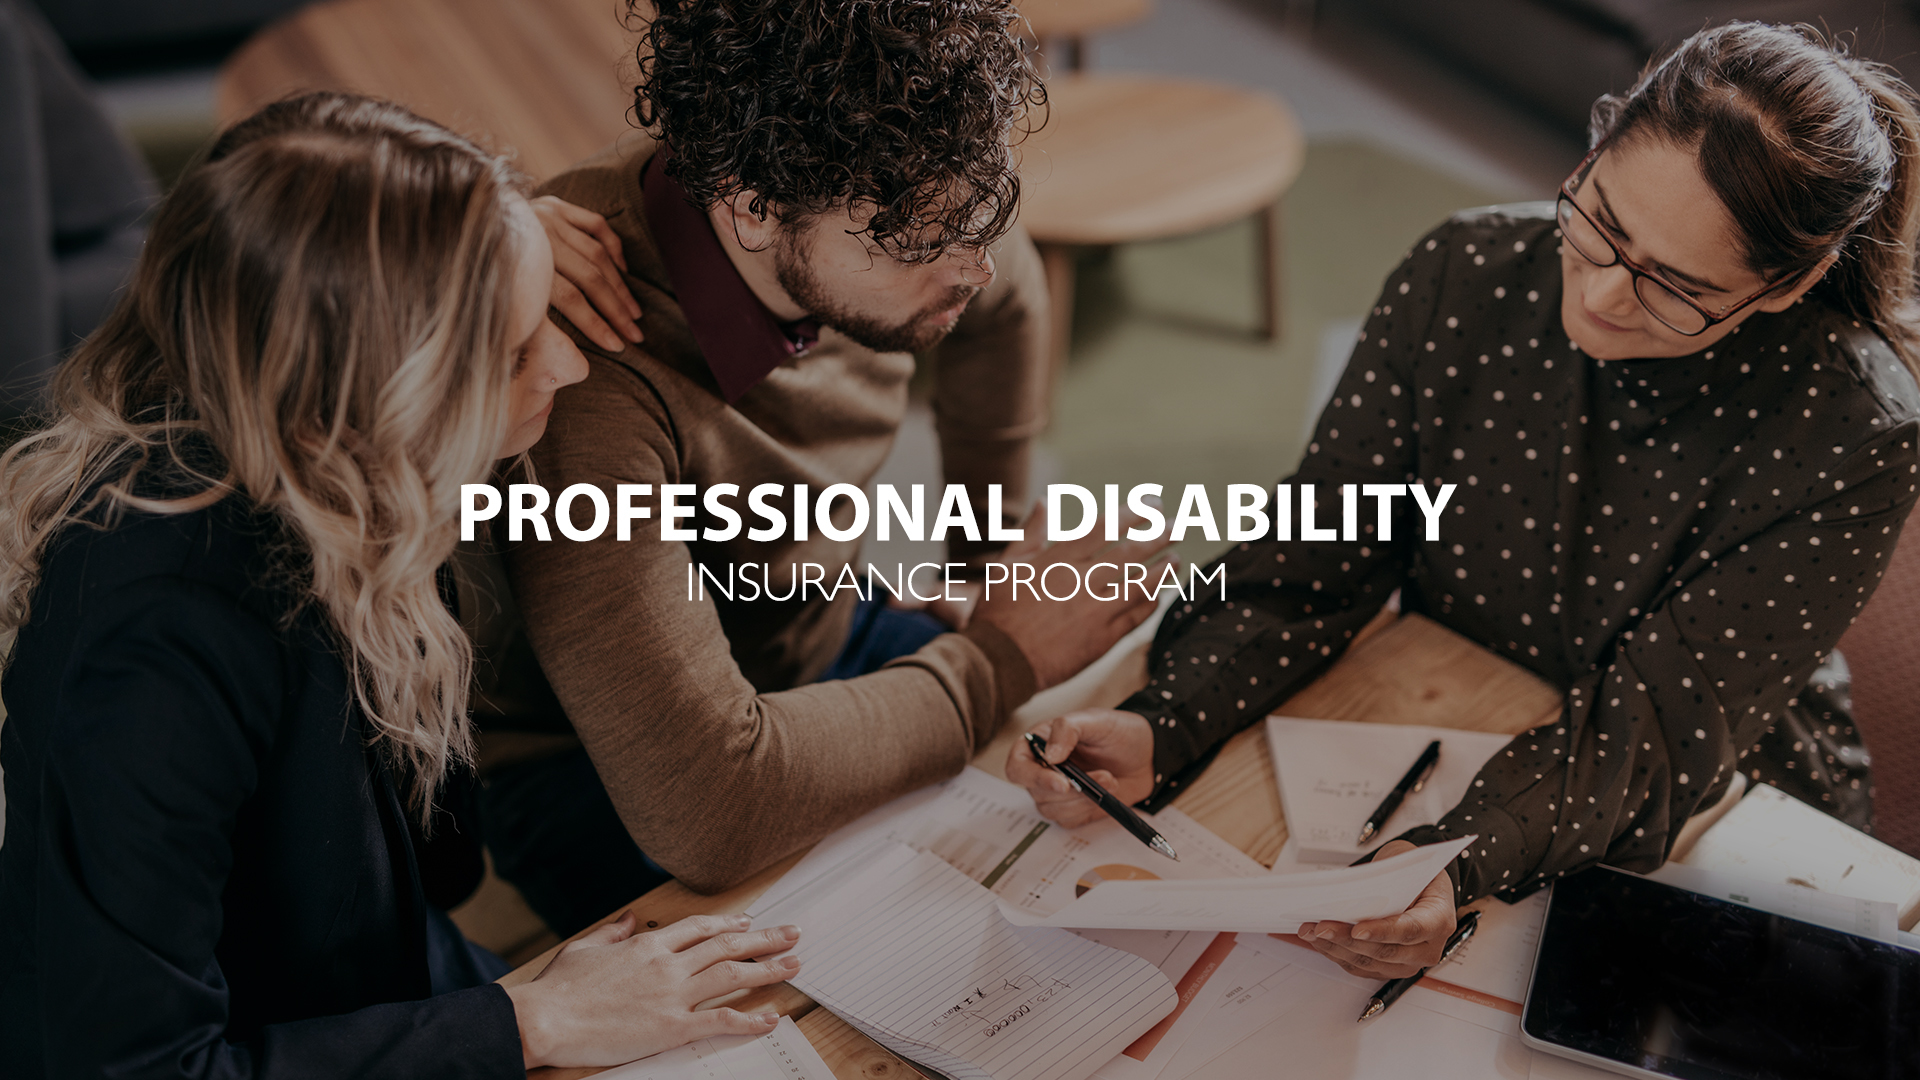 Considering a Professional Disability Insurance Program ...